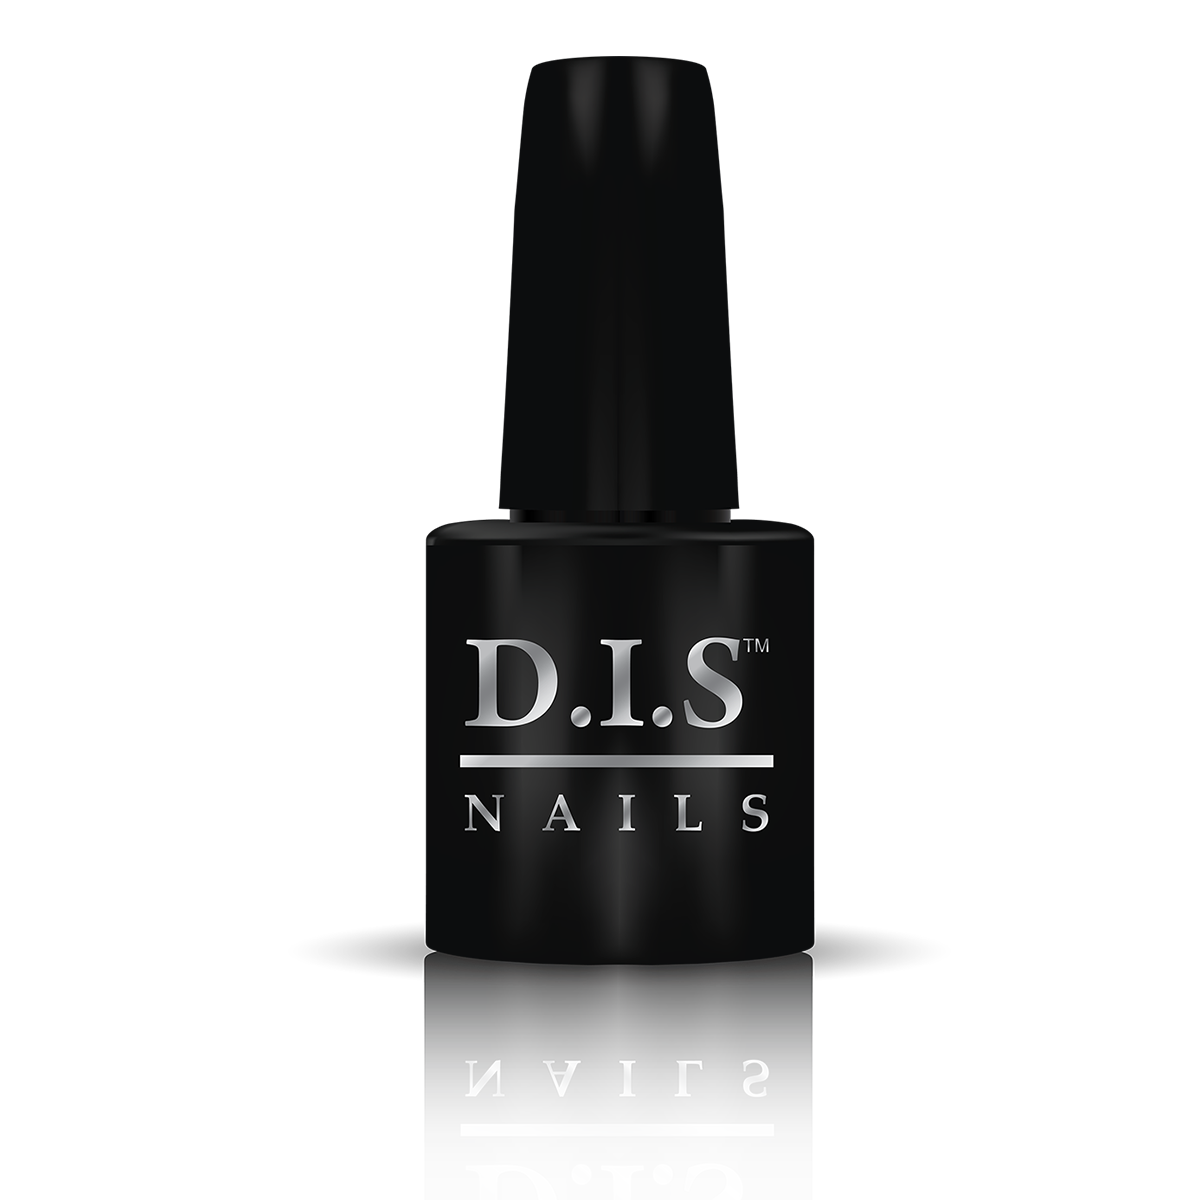 База-топ для  гель-лака D.I.S Nails GEL POLISH BASE & TOP  7,5 мл (с липким слоем)